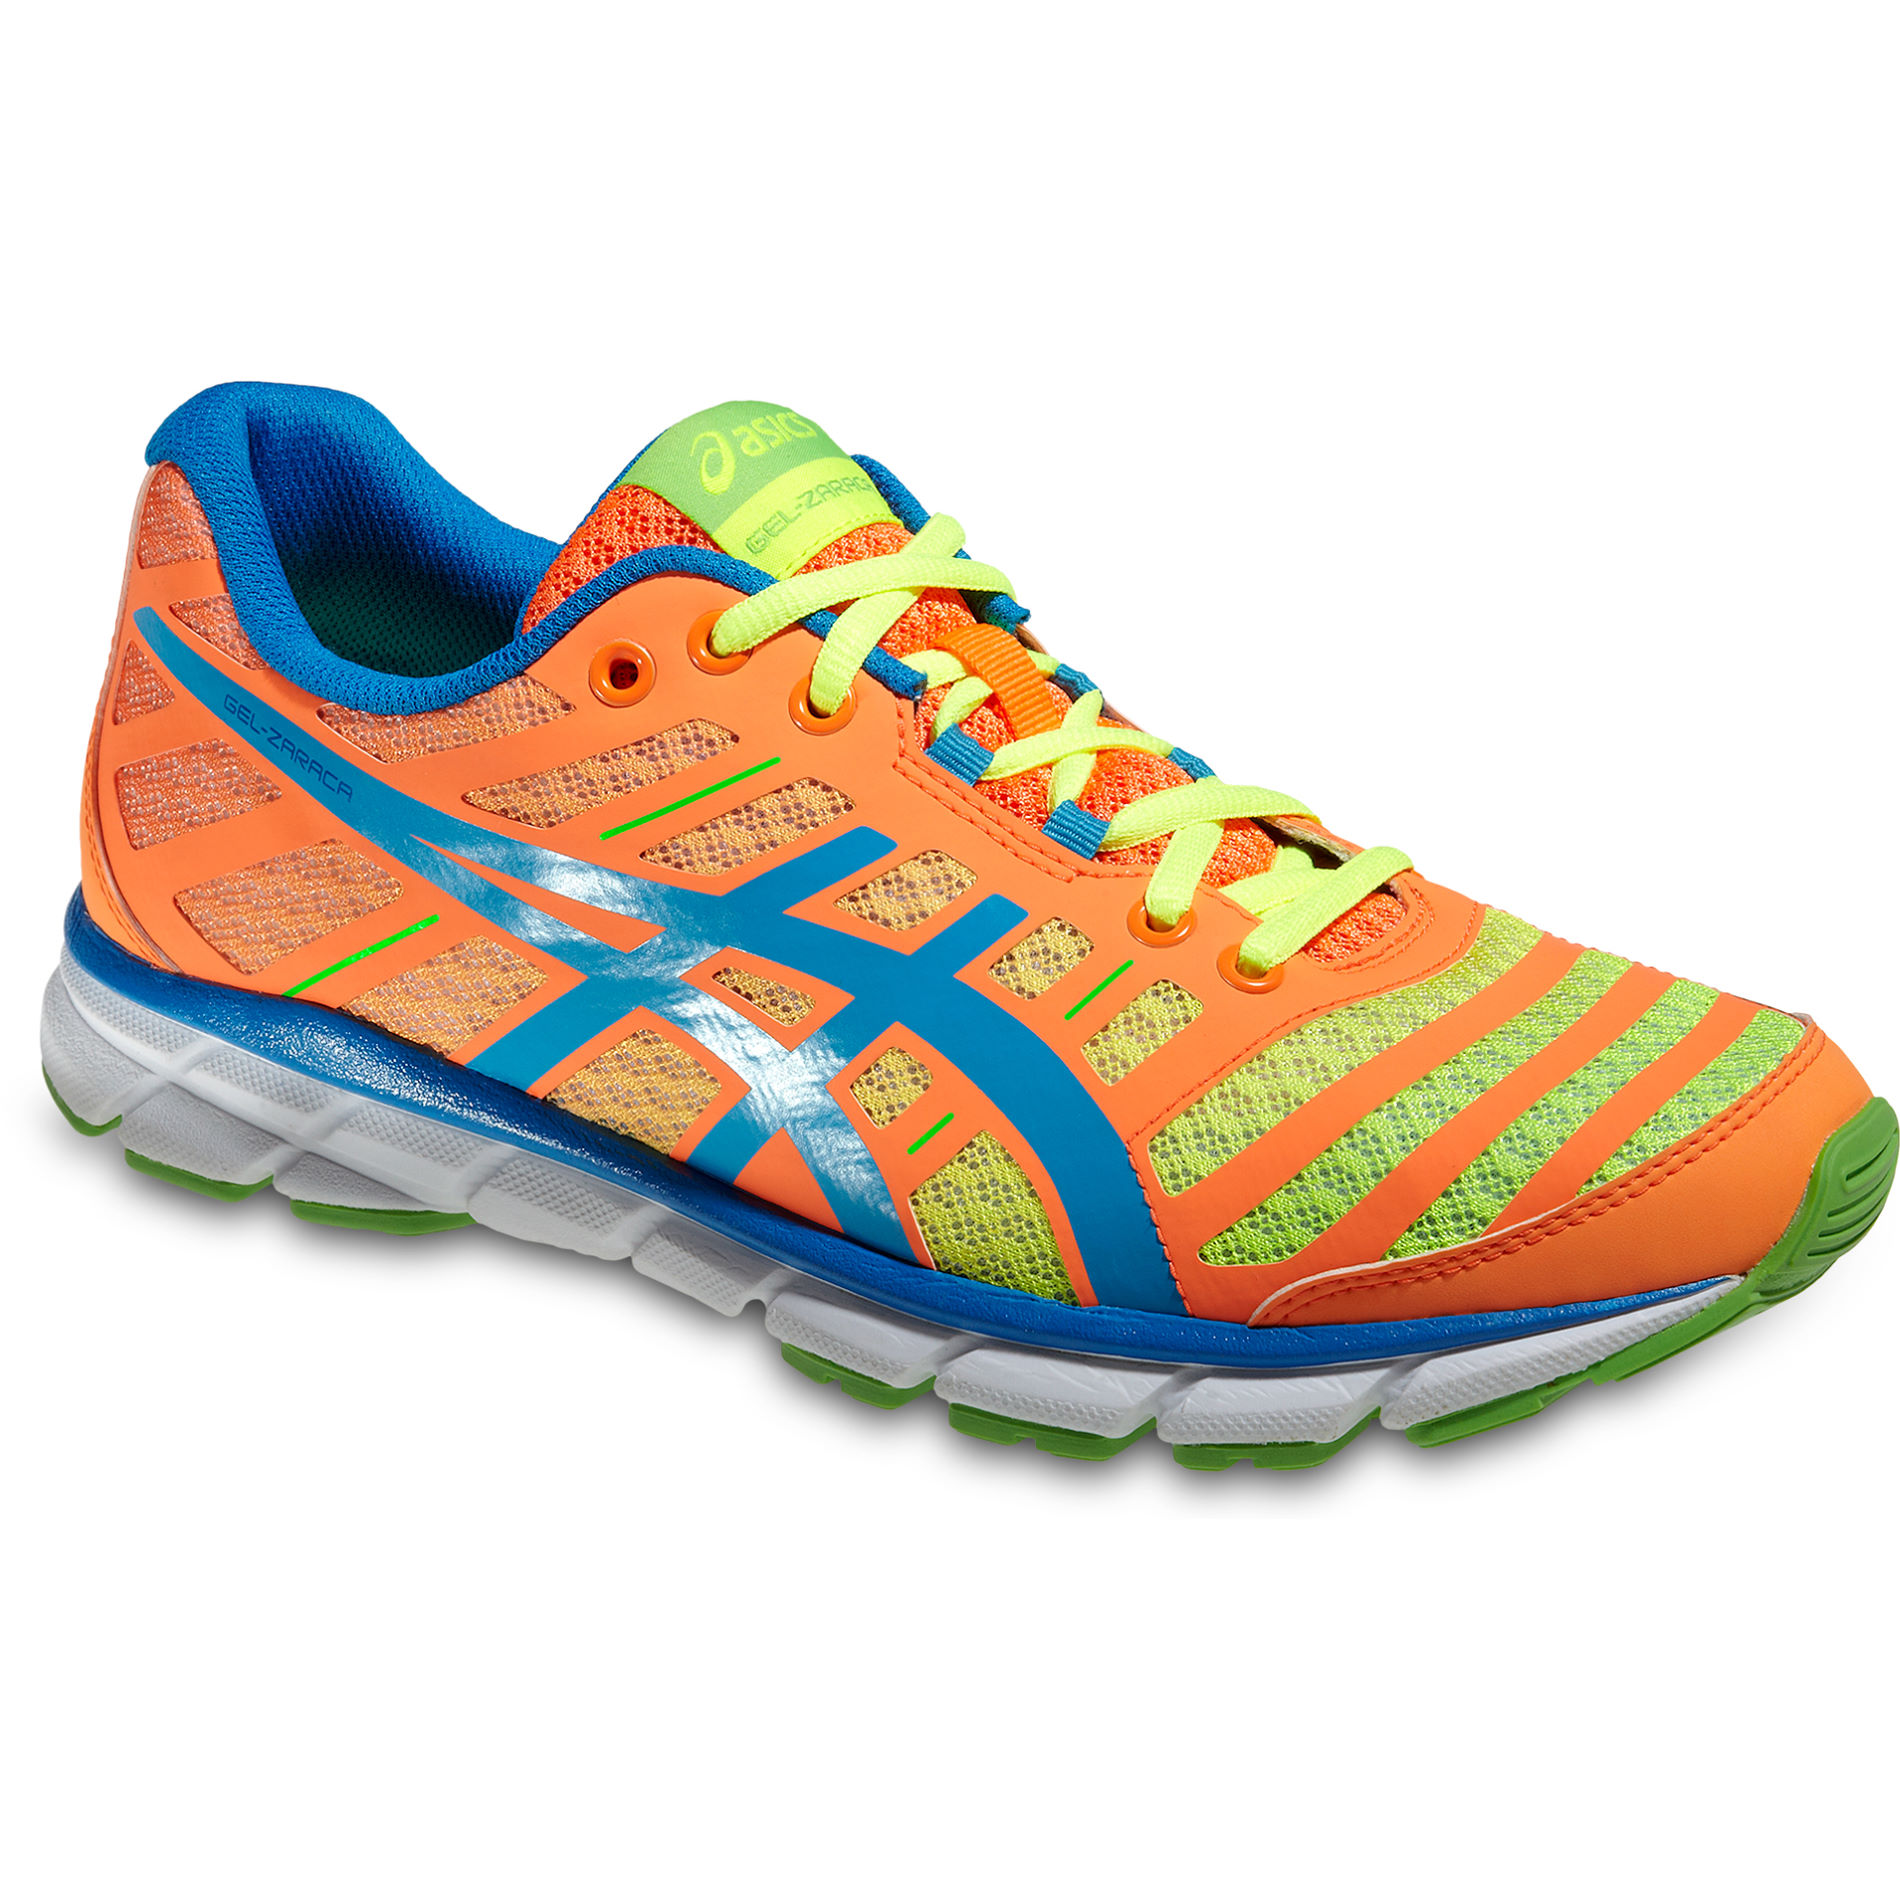 Zapatillas asics running 2014 zapatillas running asics gel - Asics Gel Zaraca 2 Shoes Limited Edition